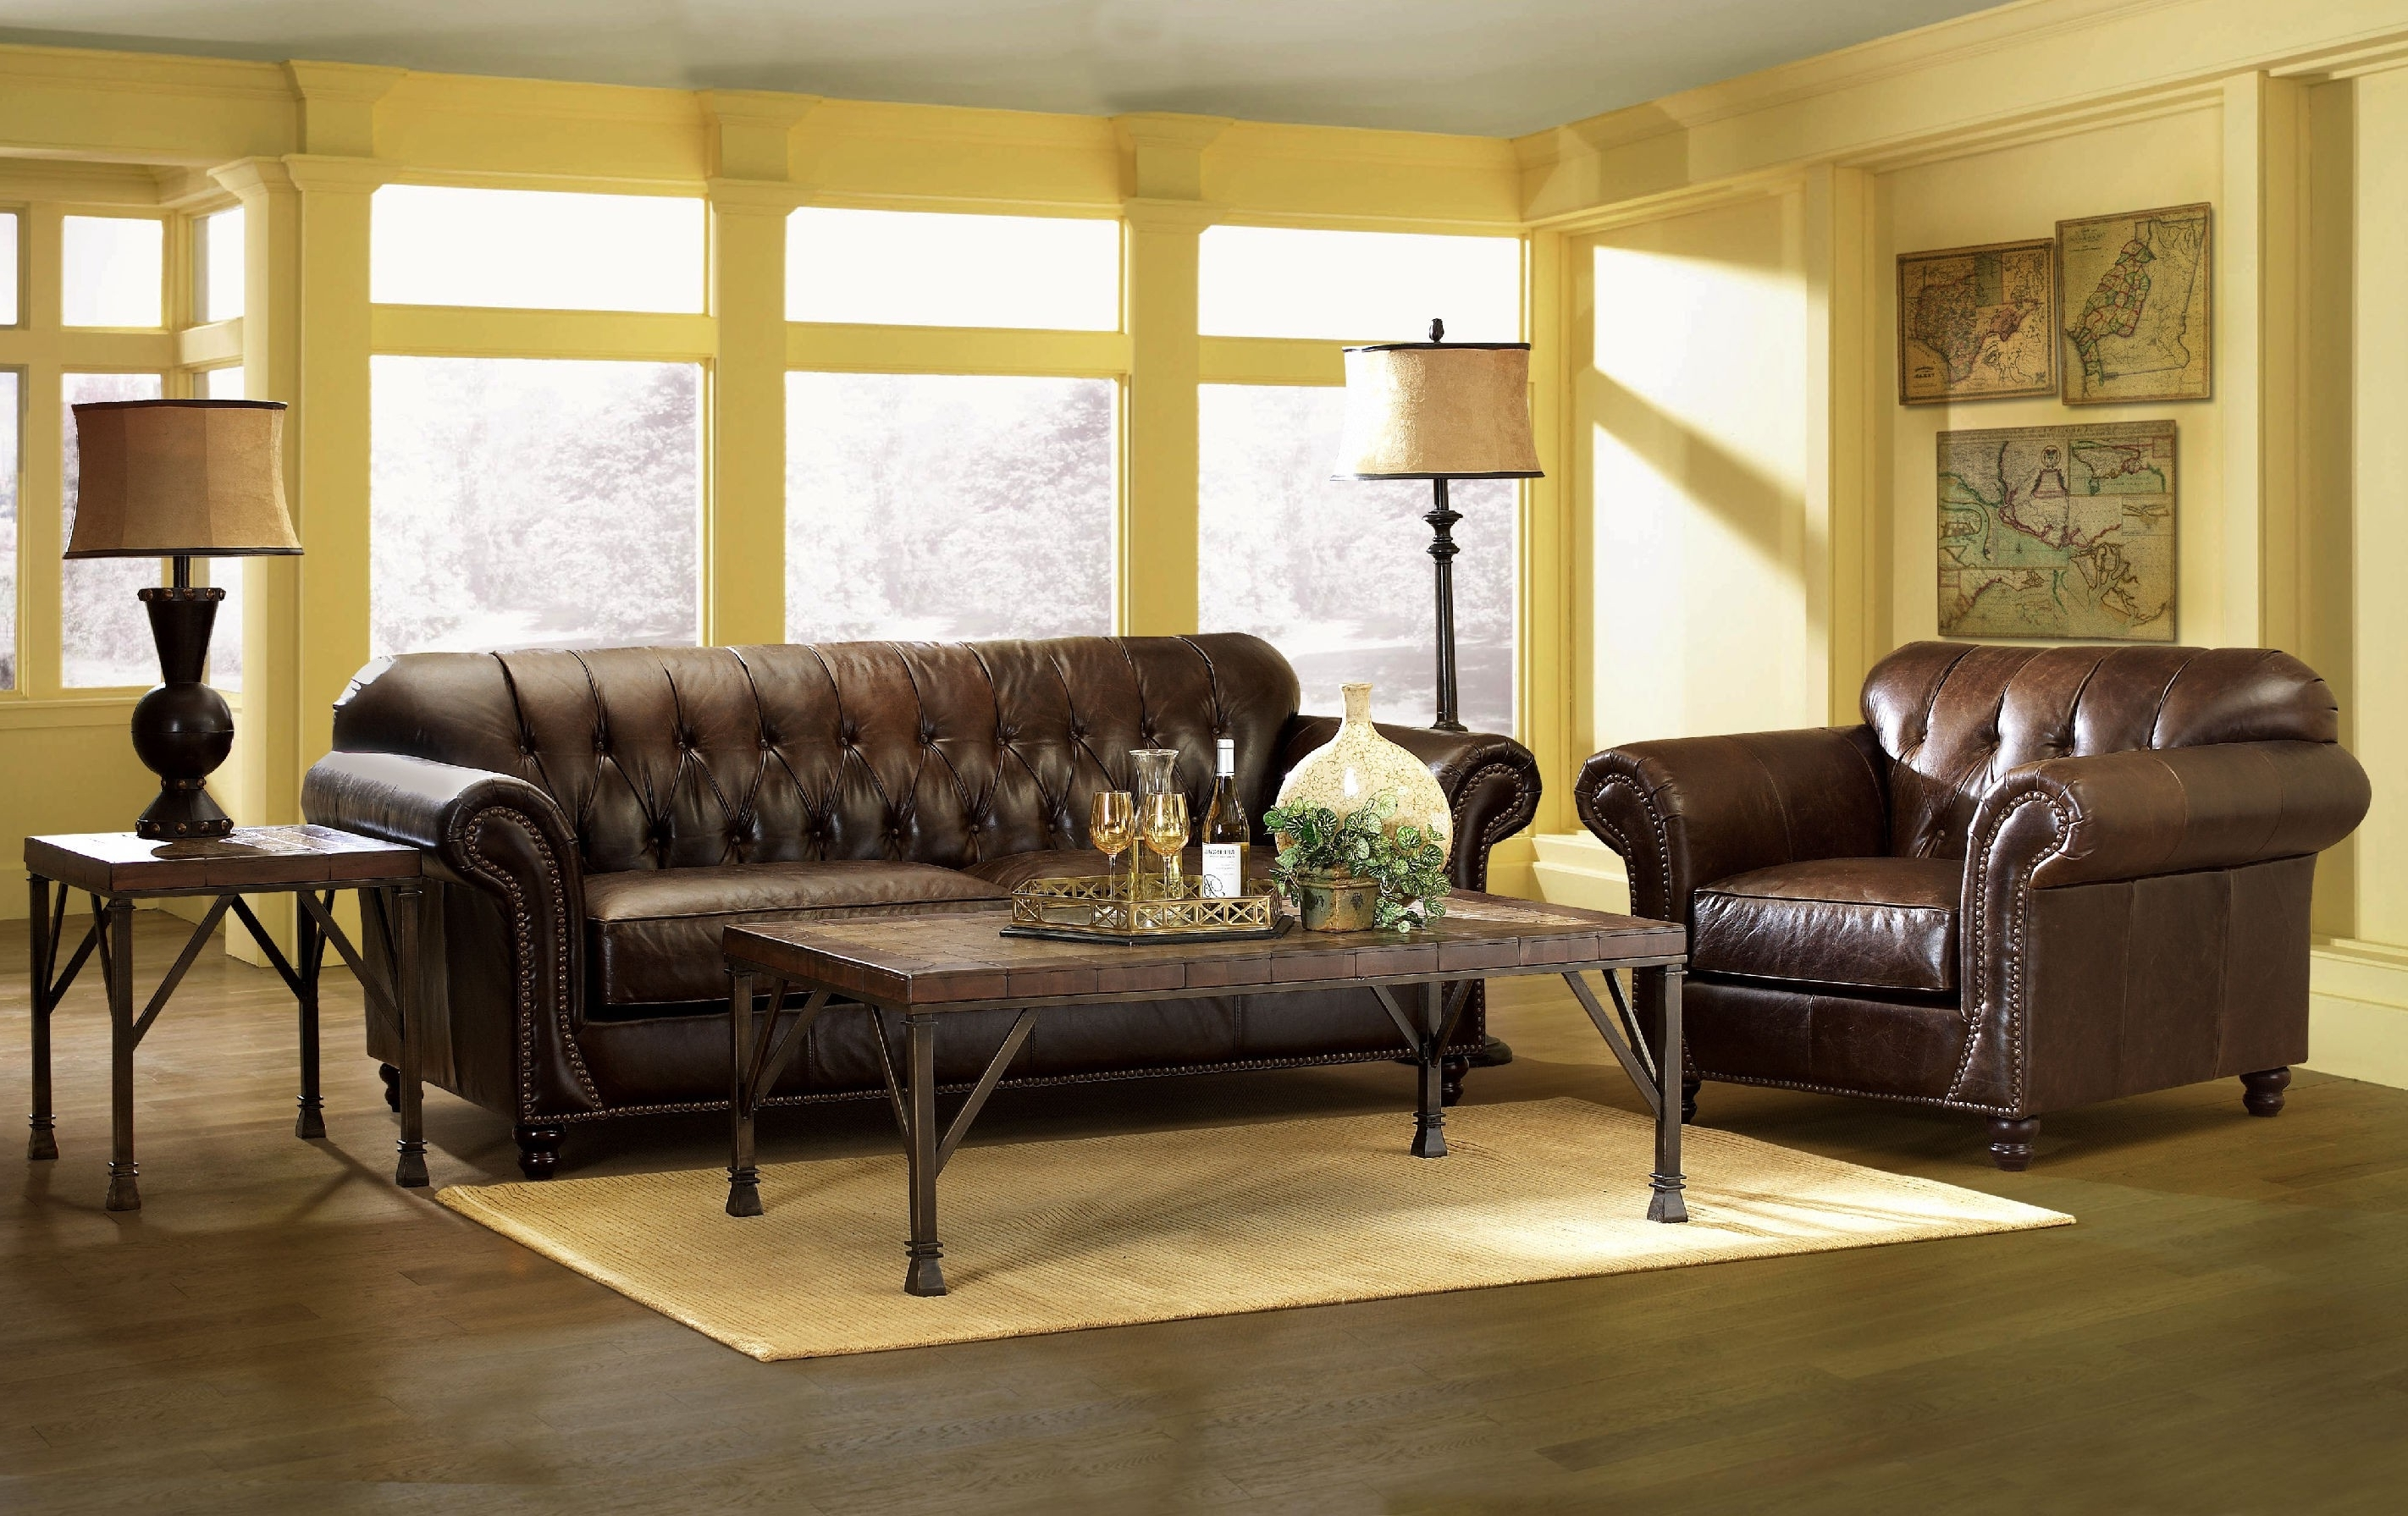 Fashionable Houzz Sectional Sofas For Leather Sectional Living Room Decor Tan Couch Ideas Sofa Sets (View 7 of 20)